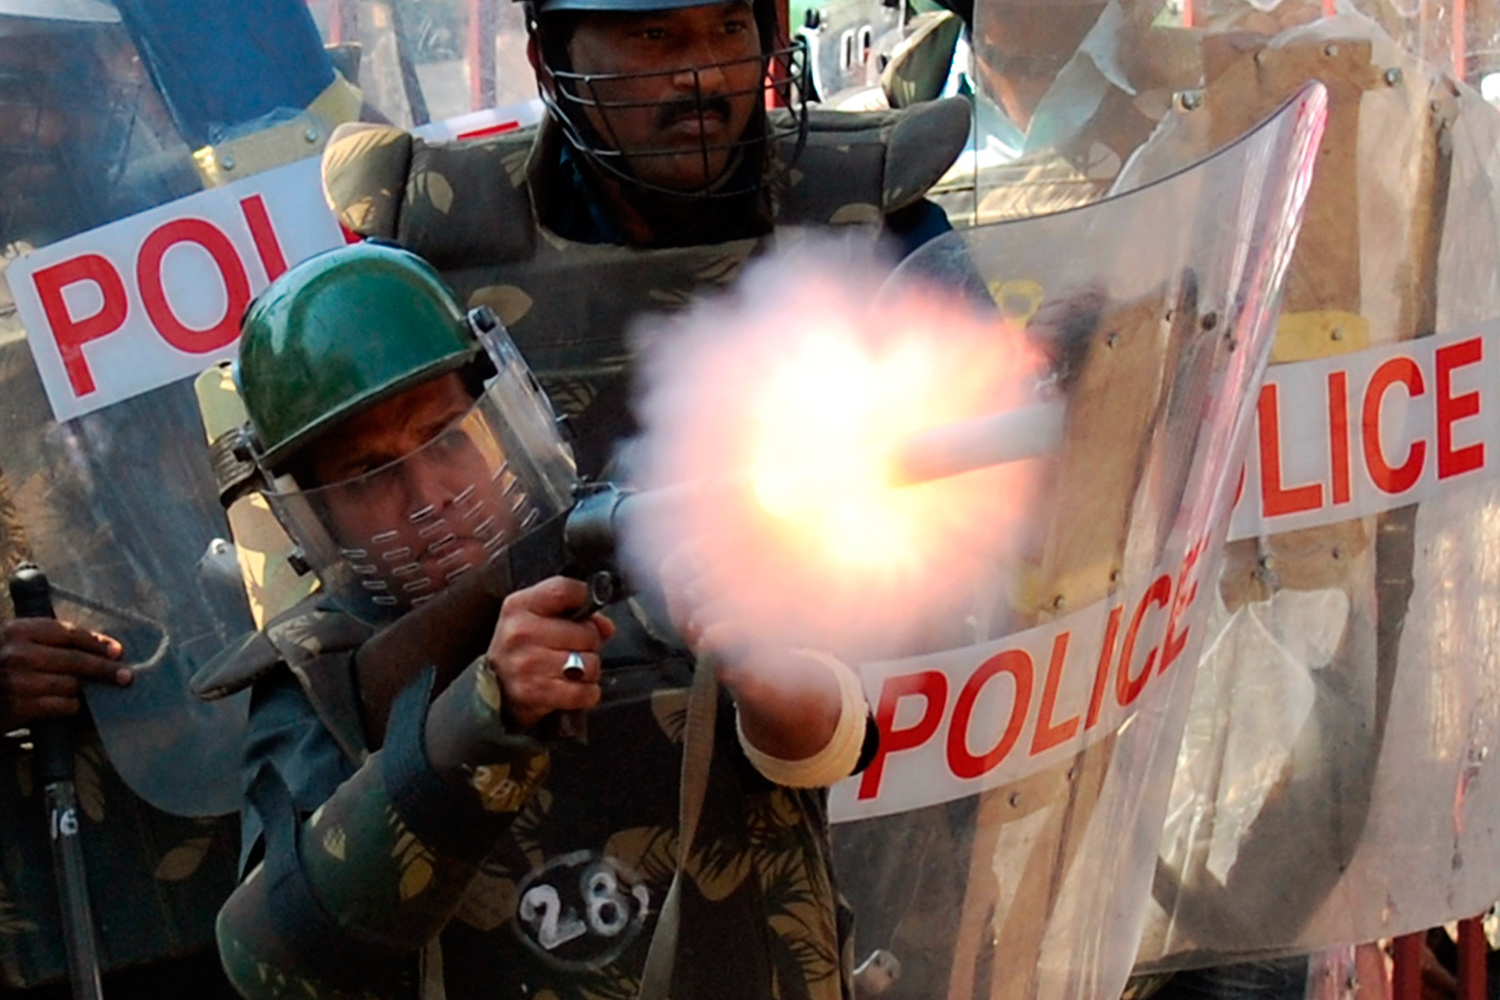 January 7, 2011. A policeman fires a teargas shell towards protesters during a demonstration in Hyderabad, India. Supporters of Telangana statehood say the interior region has been neglected in favor of Andhra Pradesh's dominant coastal districts.